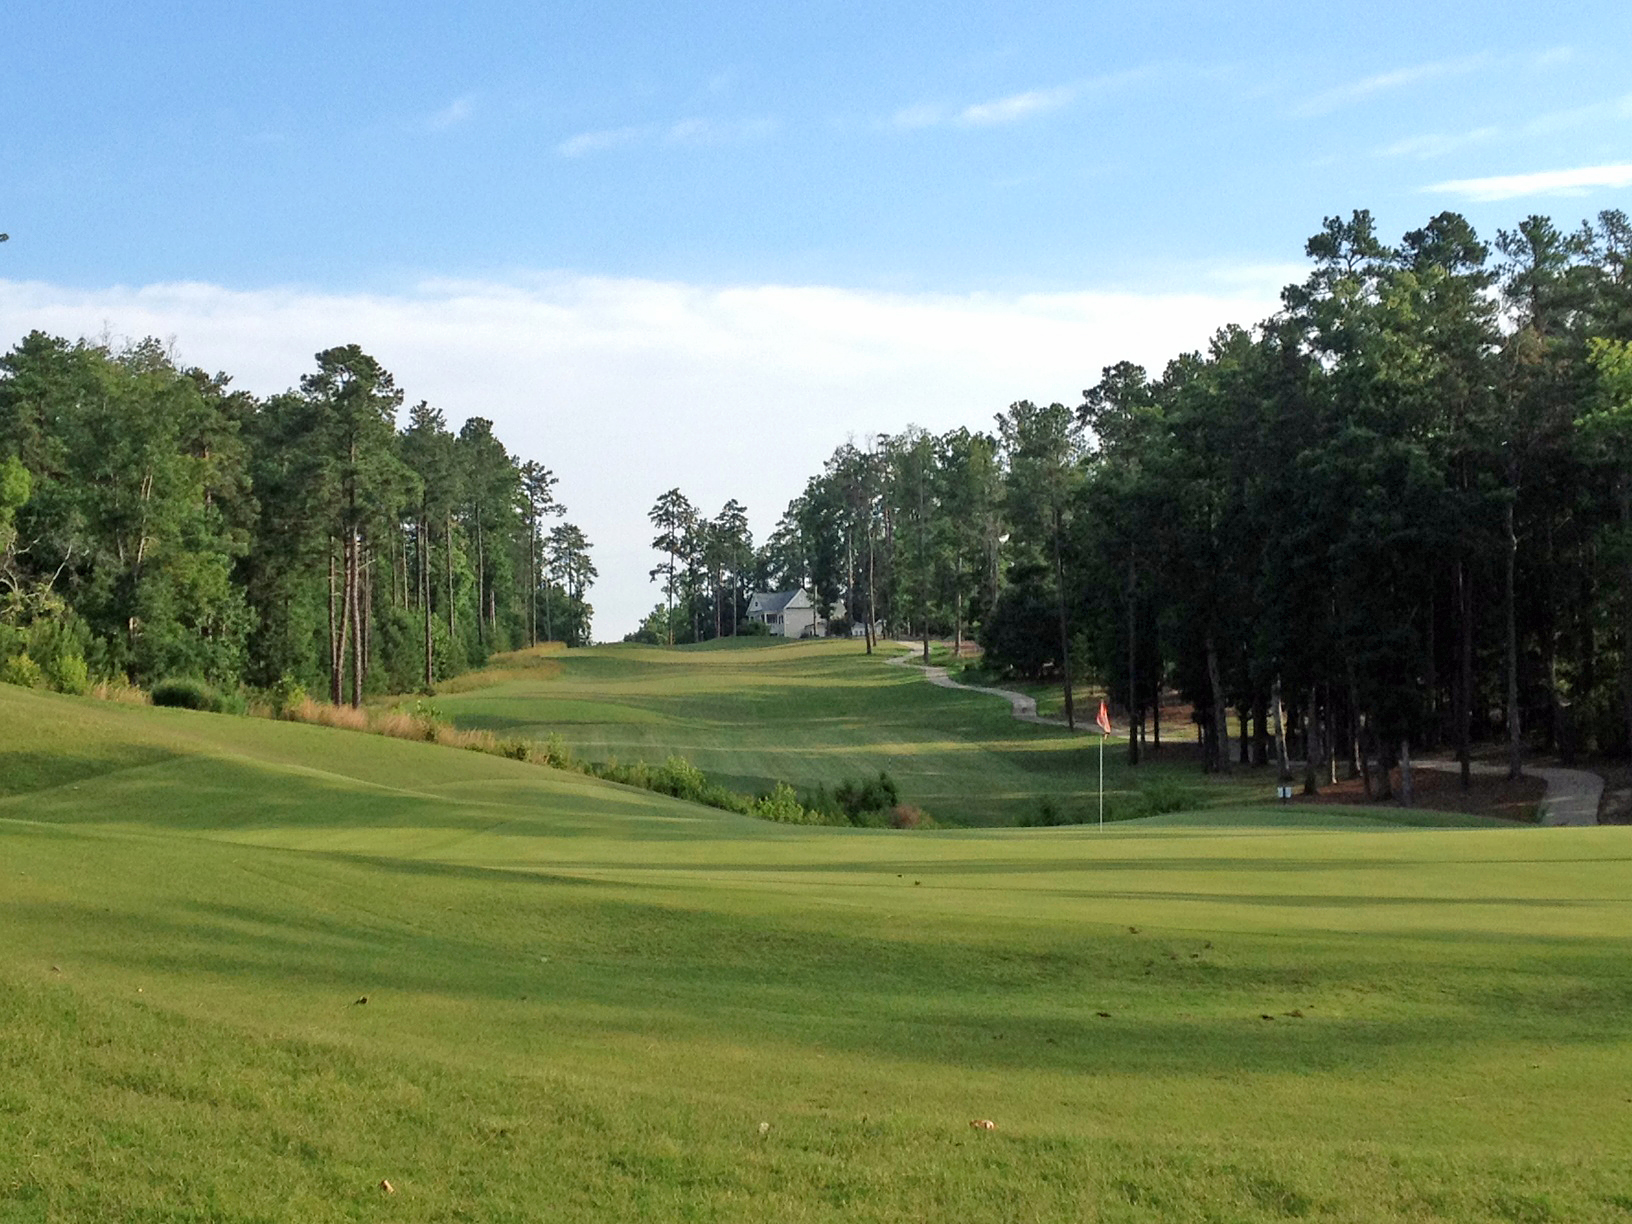 Golf Course in Preserve at Jordan Lake